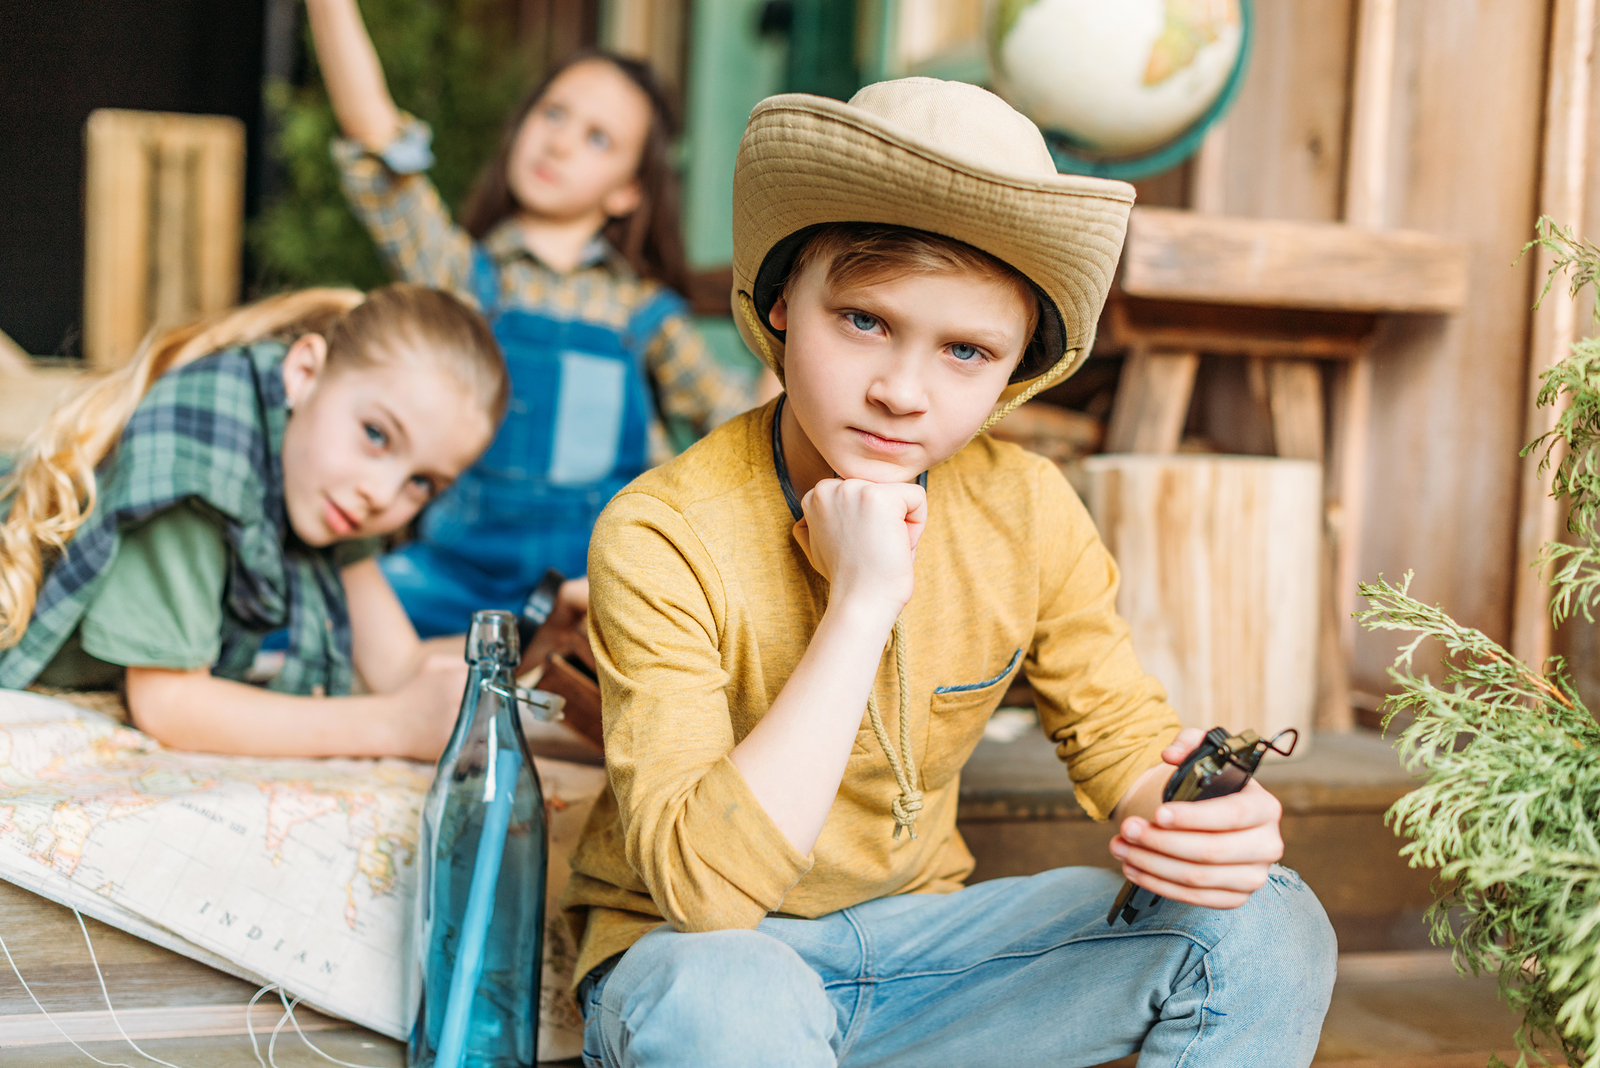 Why not begin geocaching with your family? While the treasure you'll find won't be gold, it'll be just as valuable.